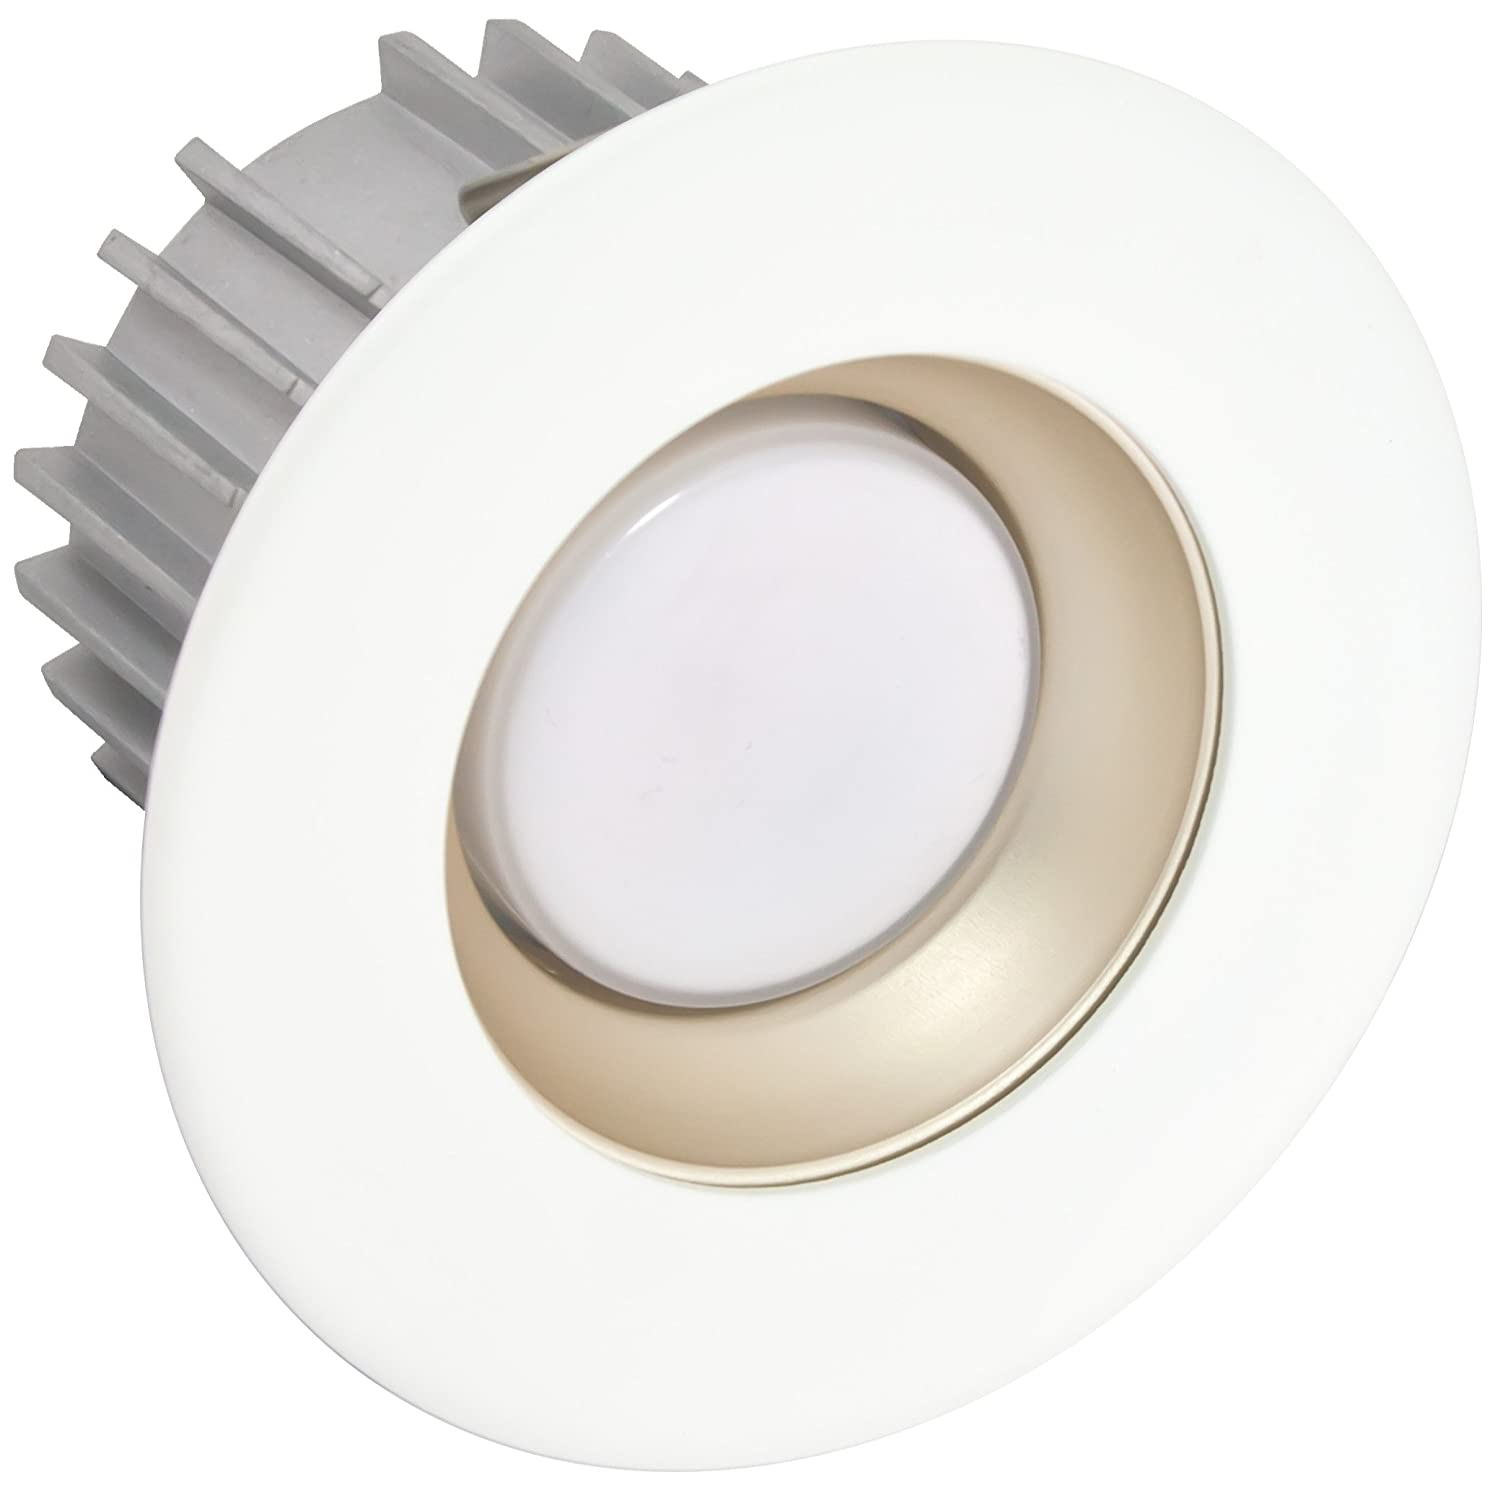 White American Lighting X3-SPM-WH-X34 3-Inch Downlight X34 Series Trim Kit with Satin Pearl Multiplier